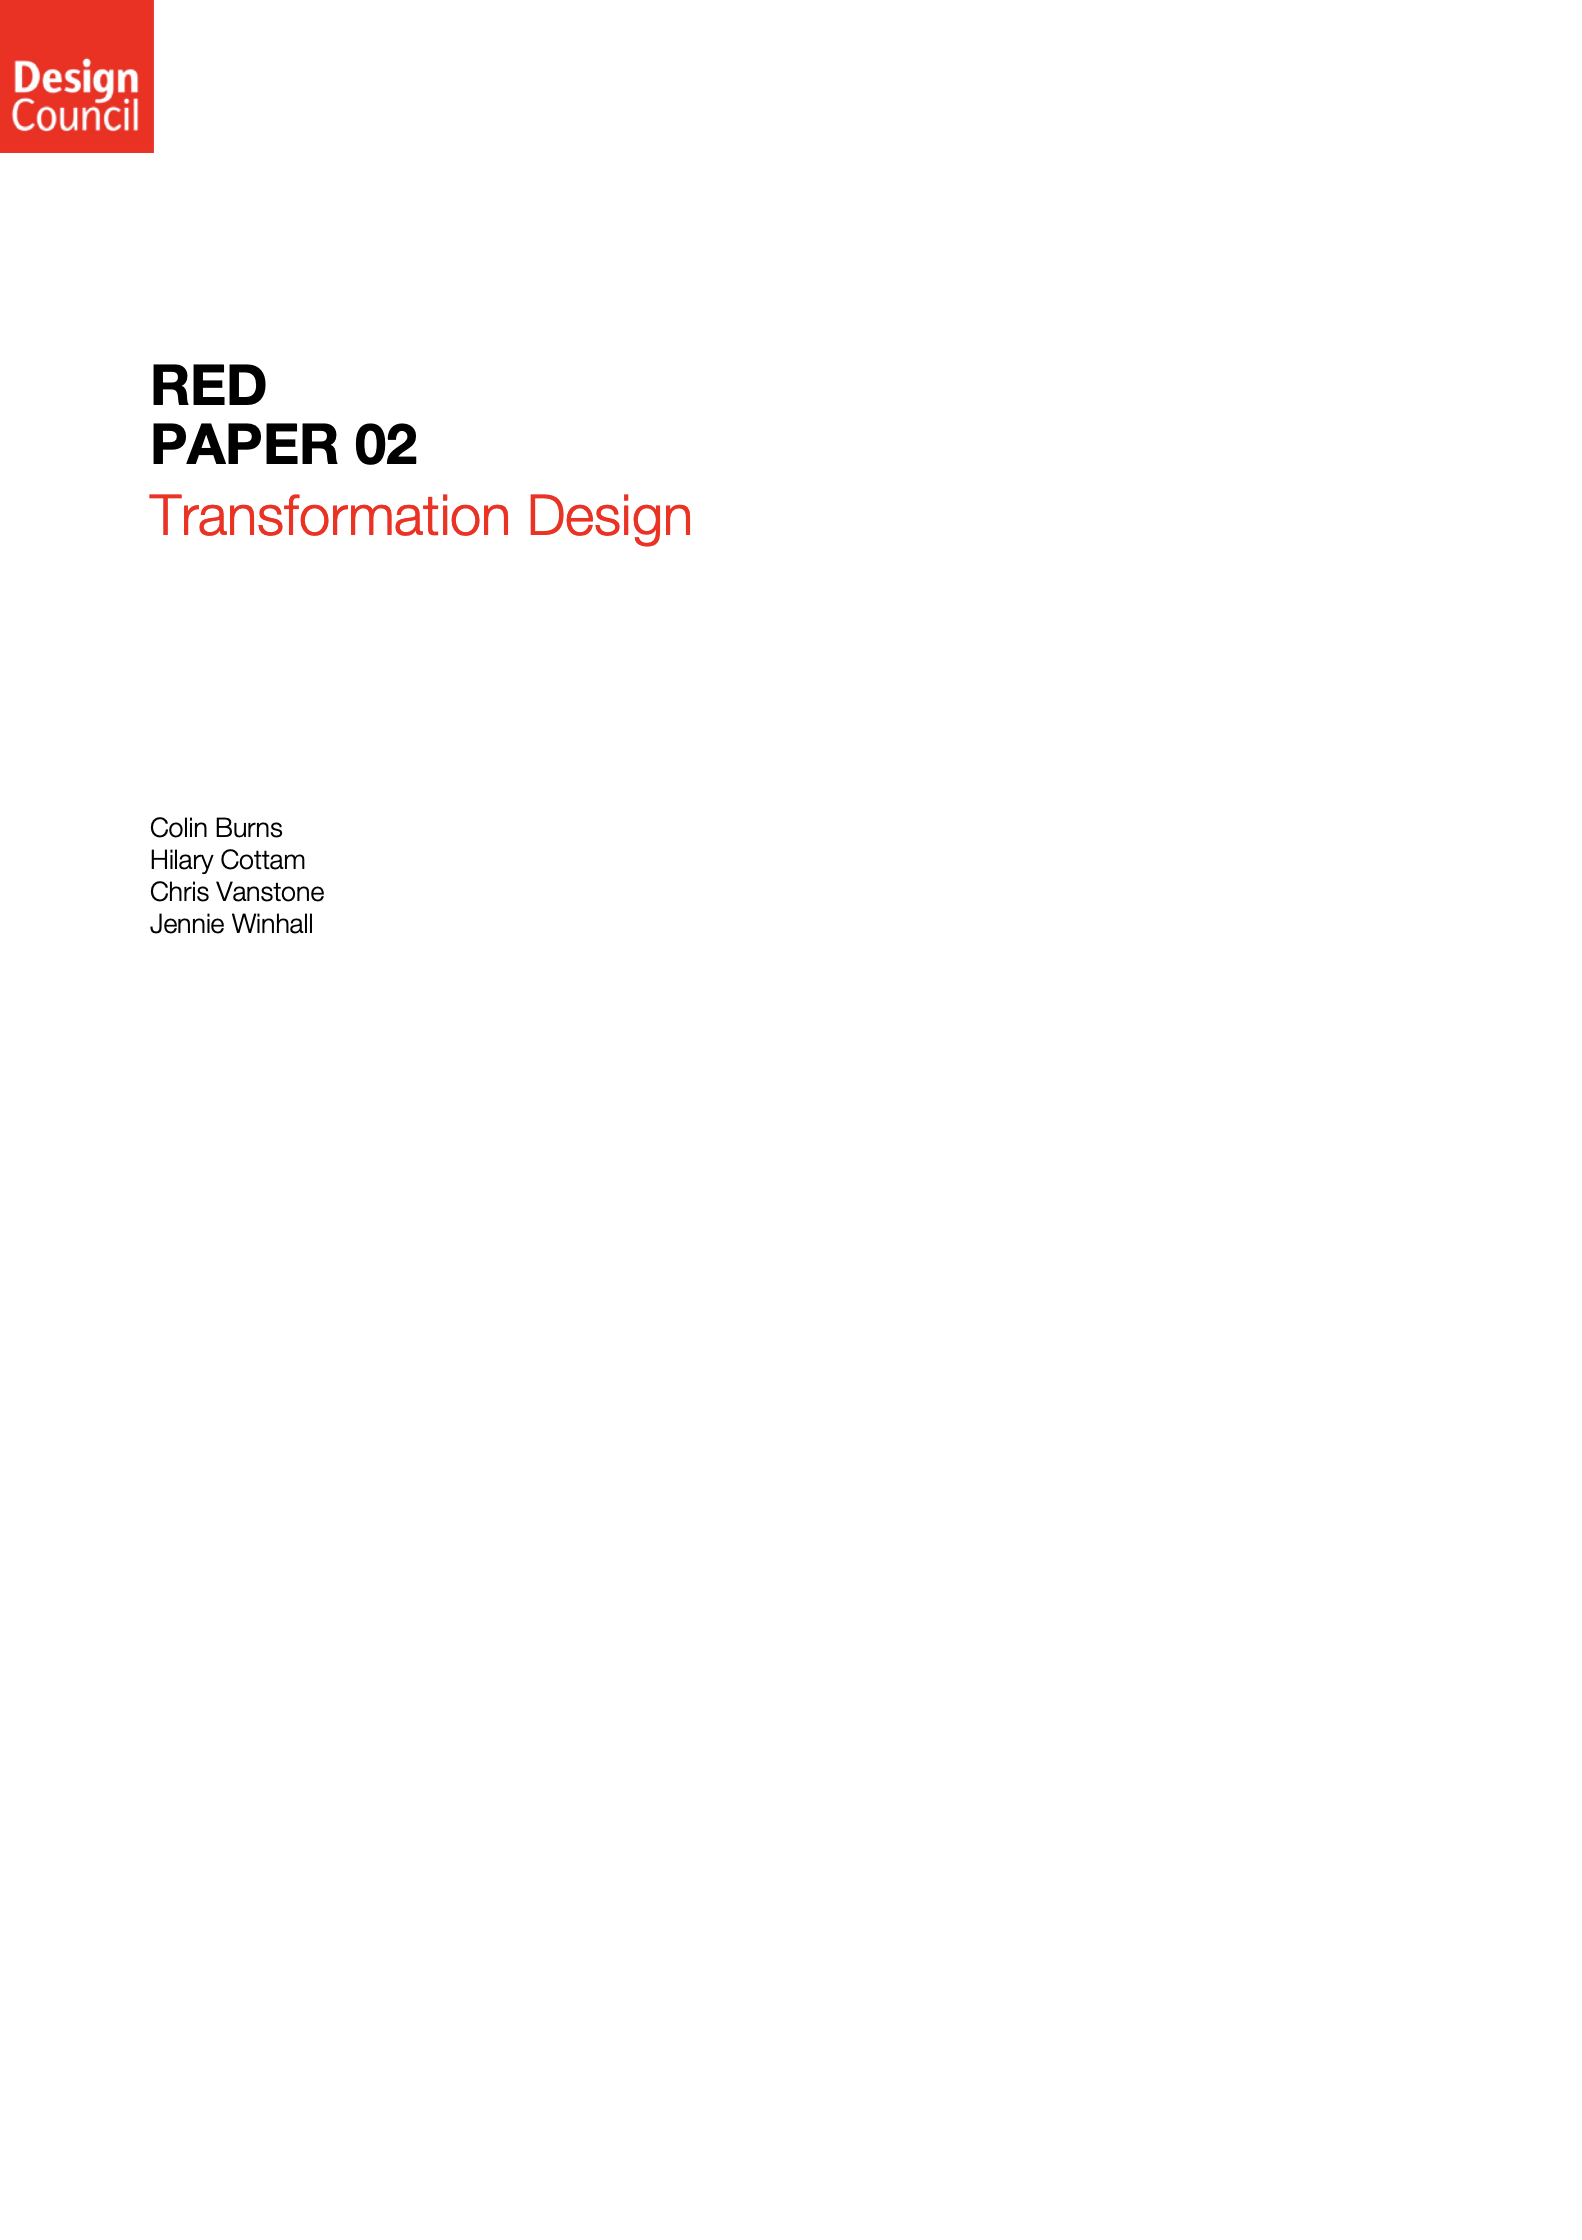 「Red Paper 02: Transformation Design, UK Design Council」